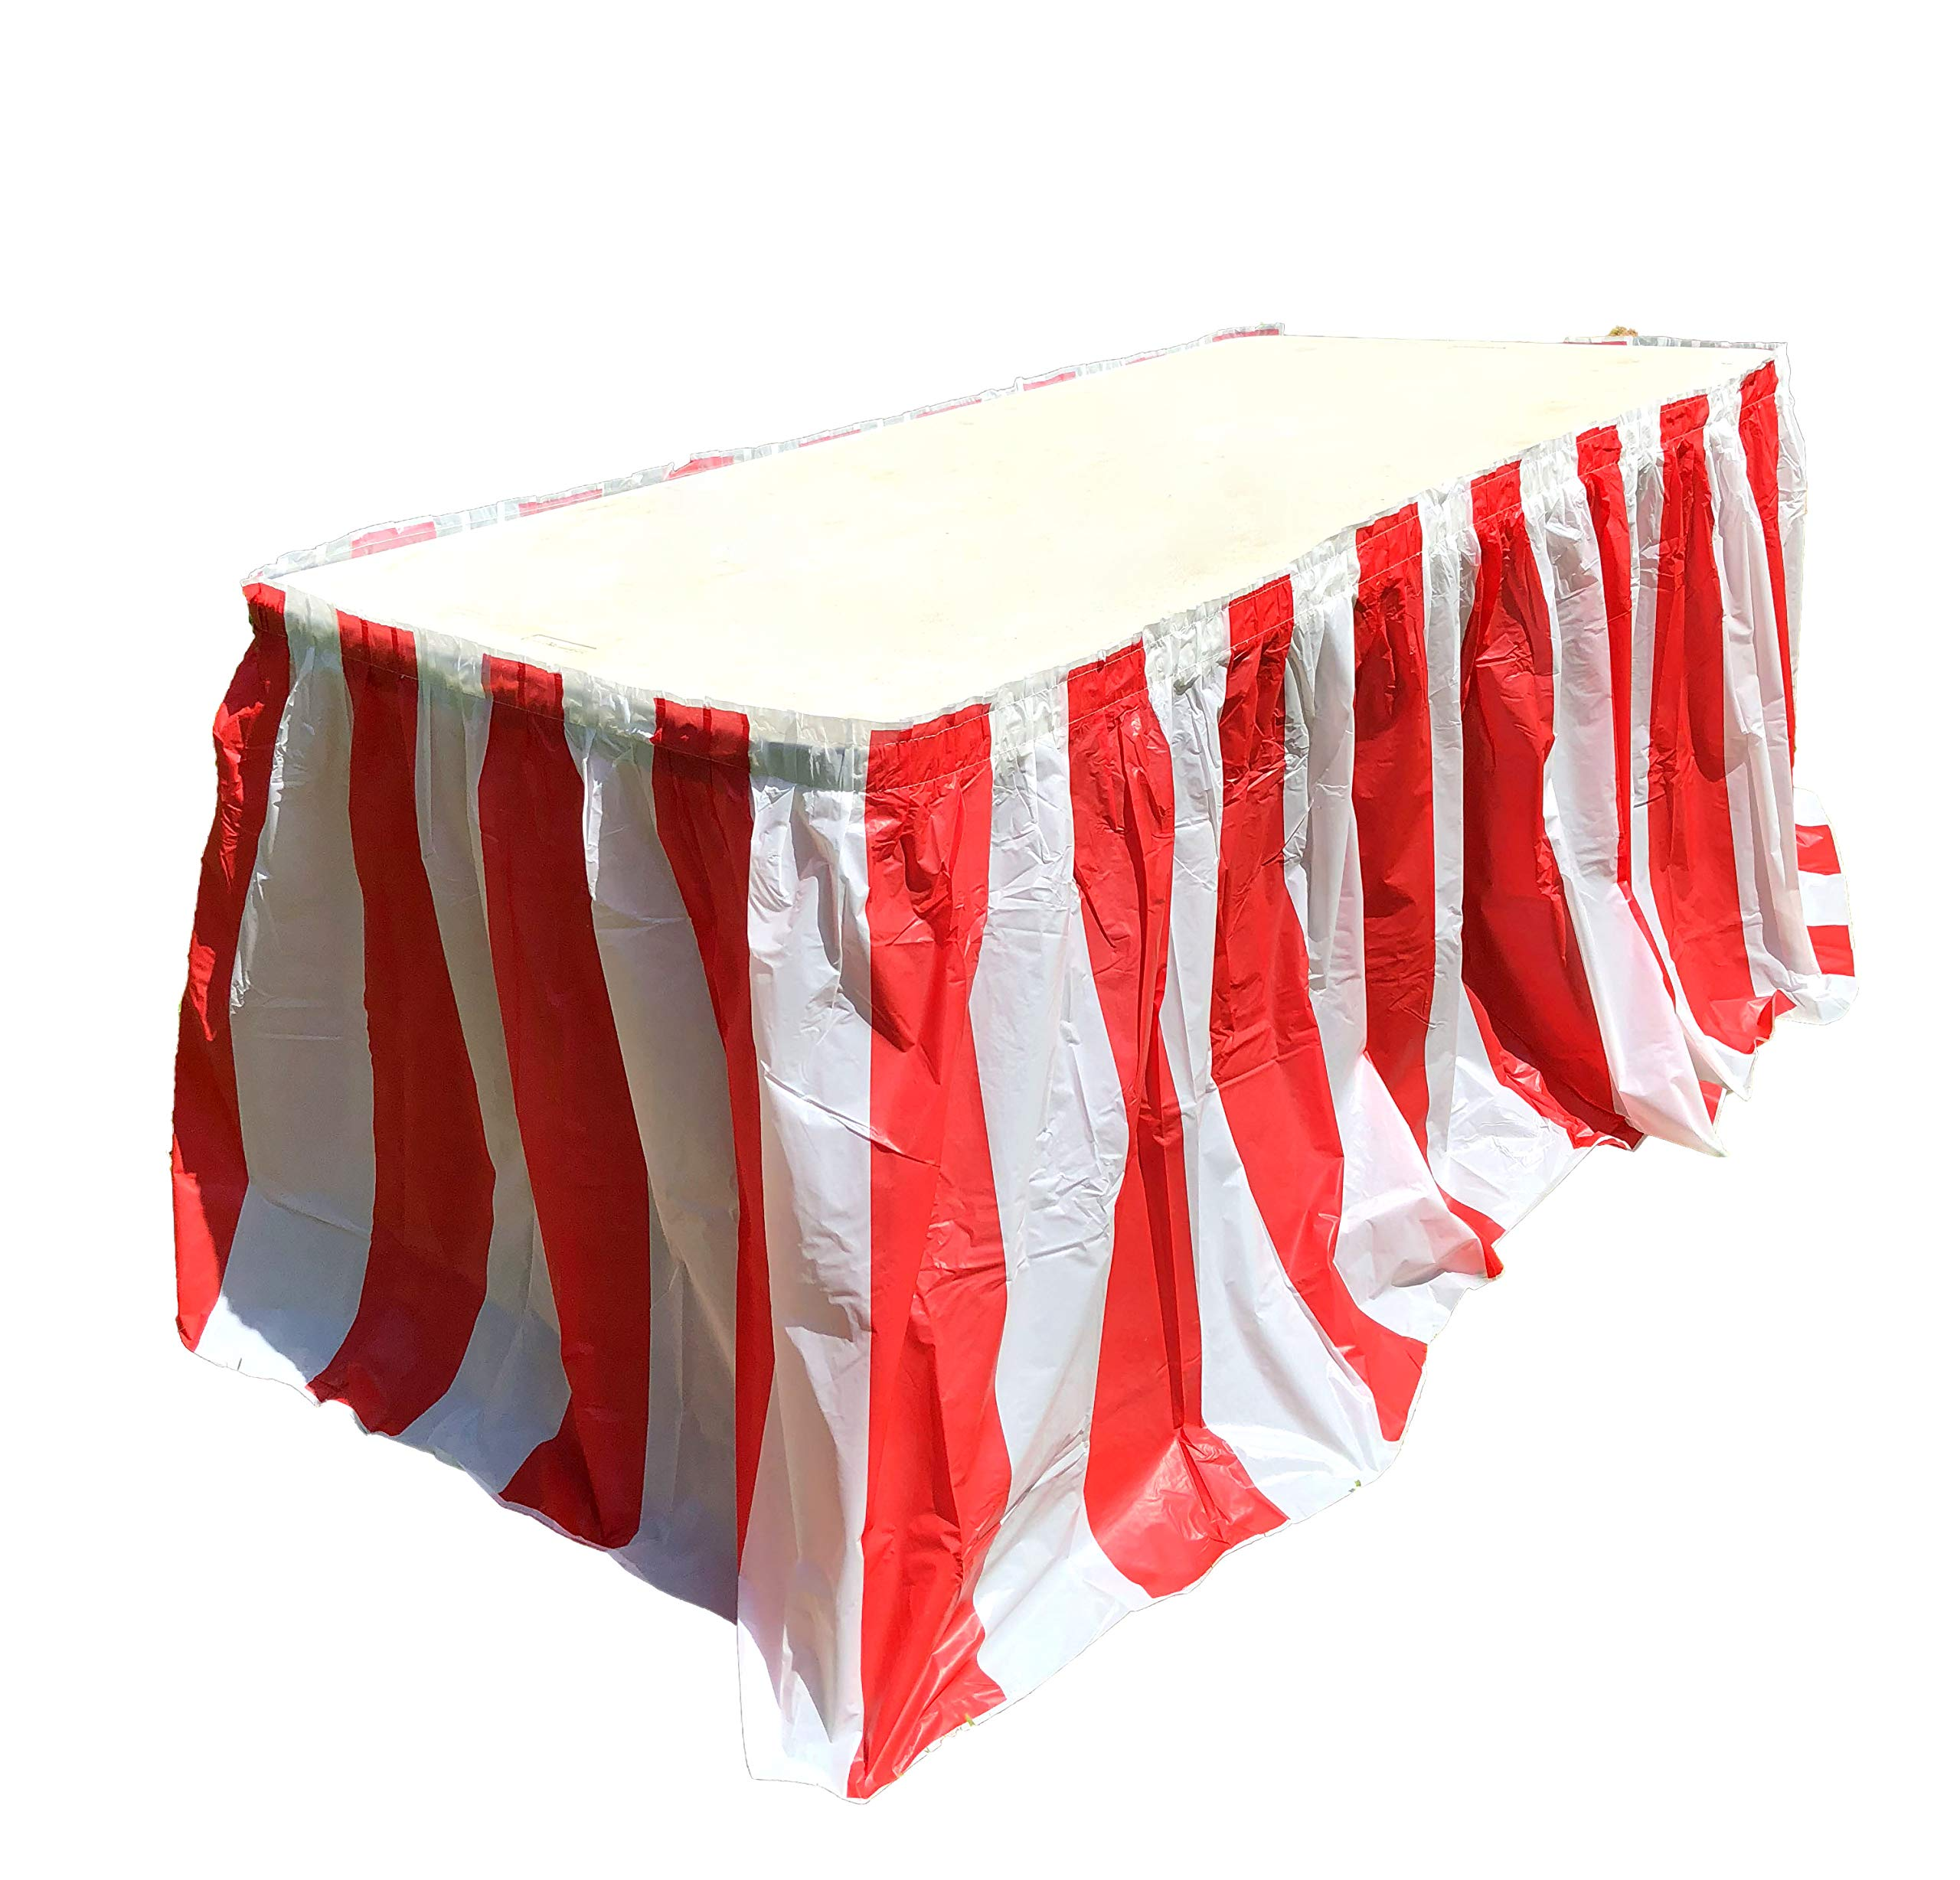 Red and White Striped Table Skirt, Carnival Style Picnic Table Skirts For Parties! (RED & WHITE, 4)